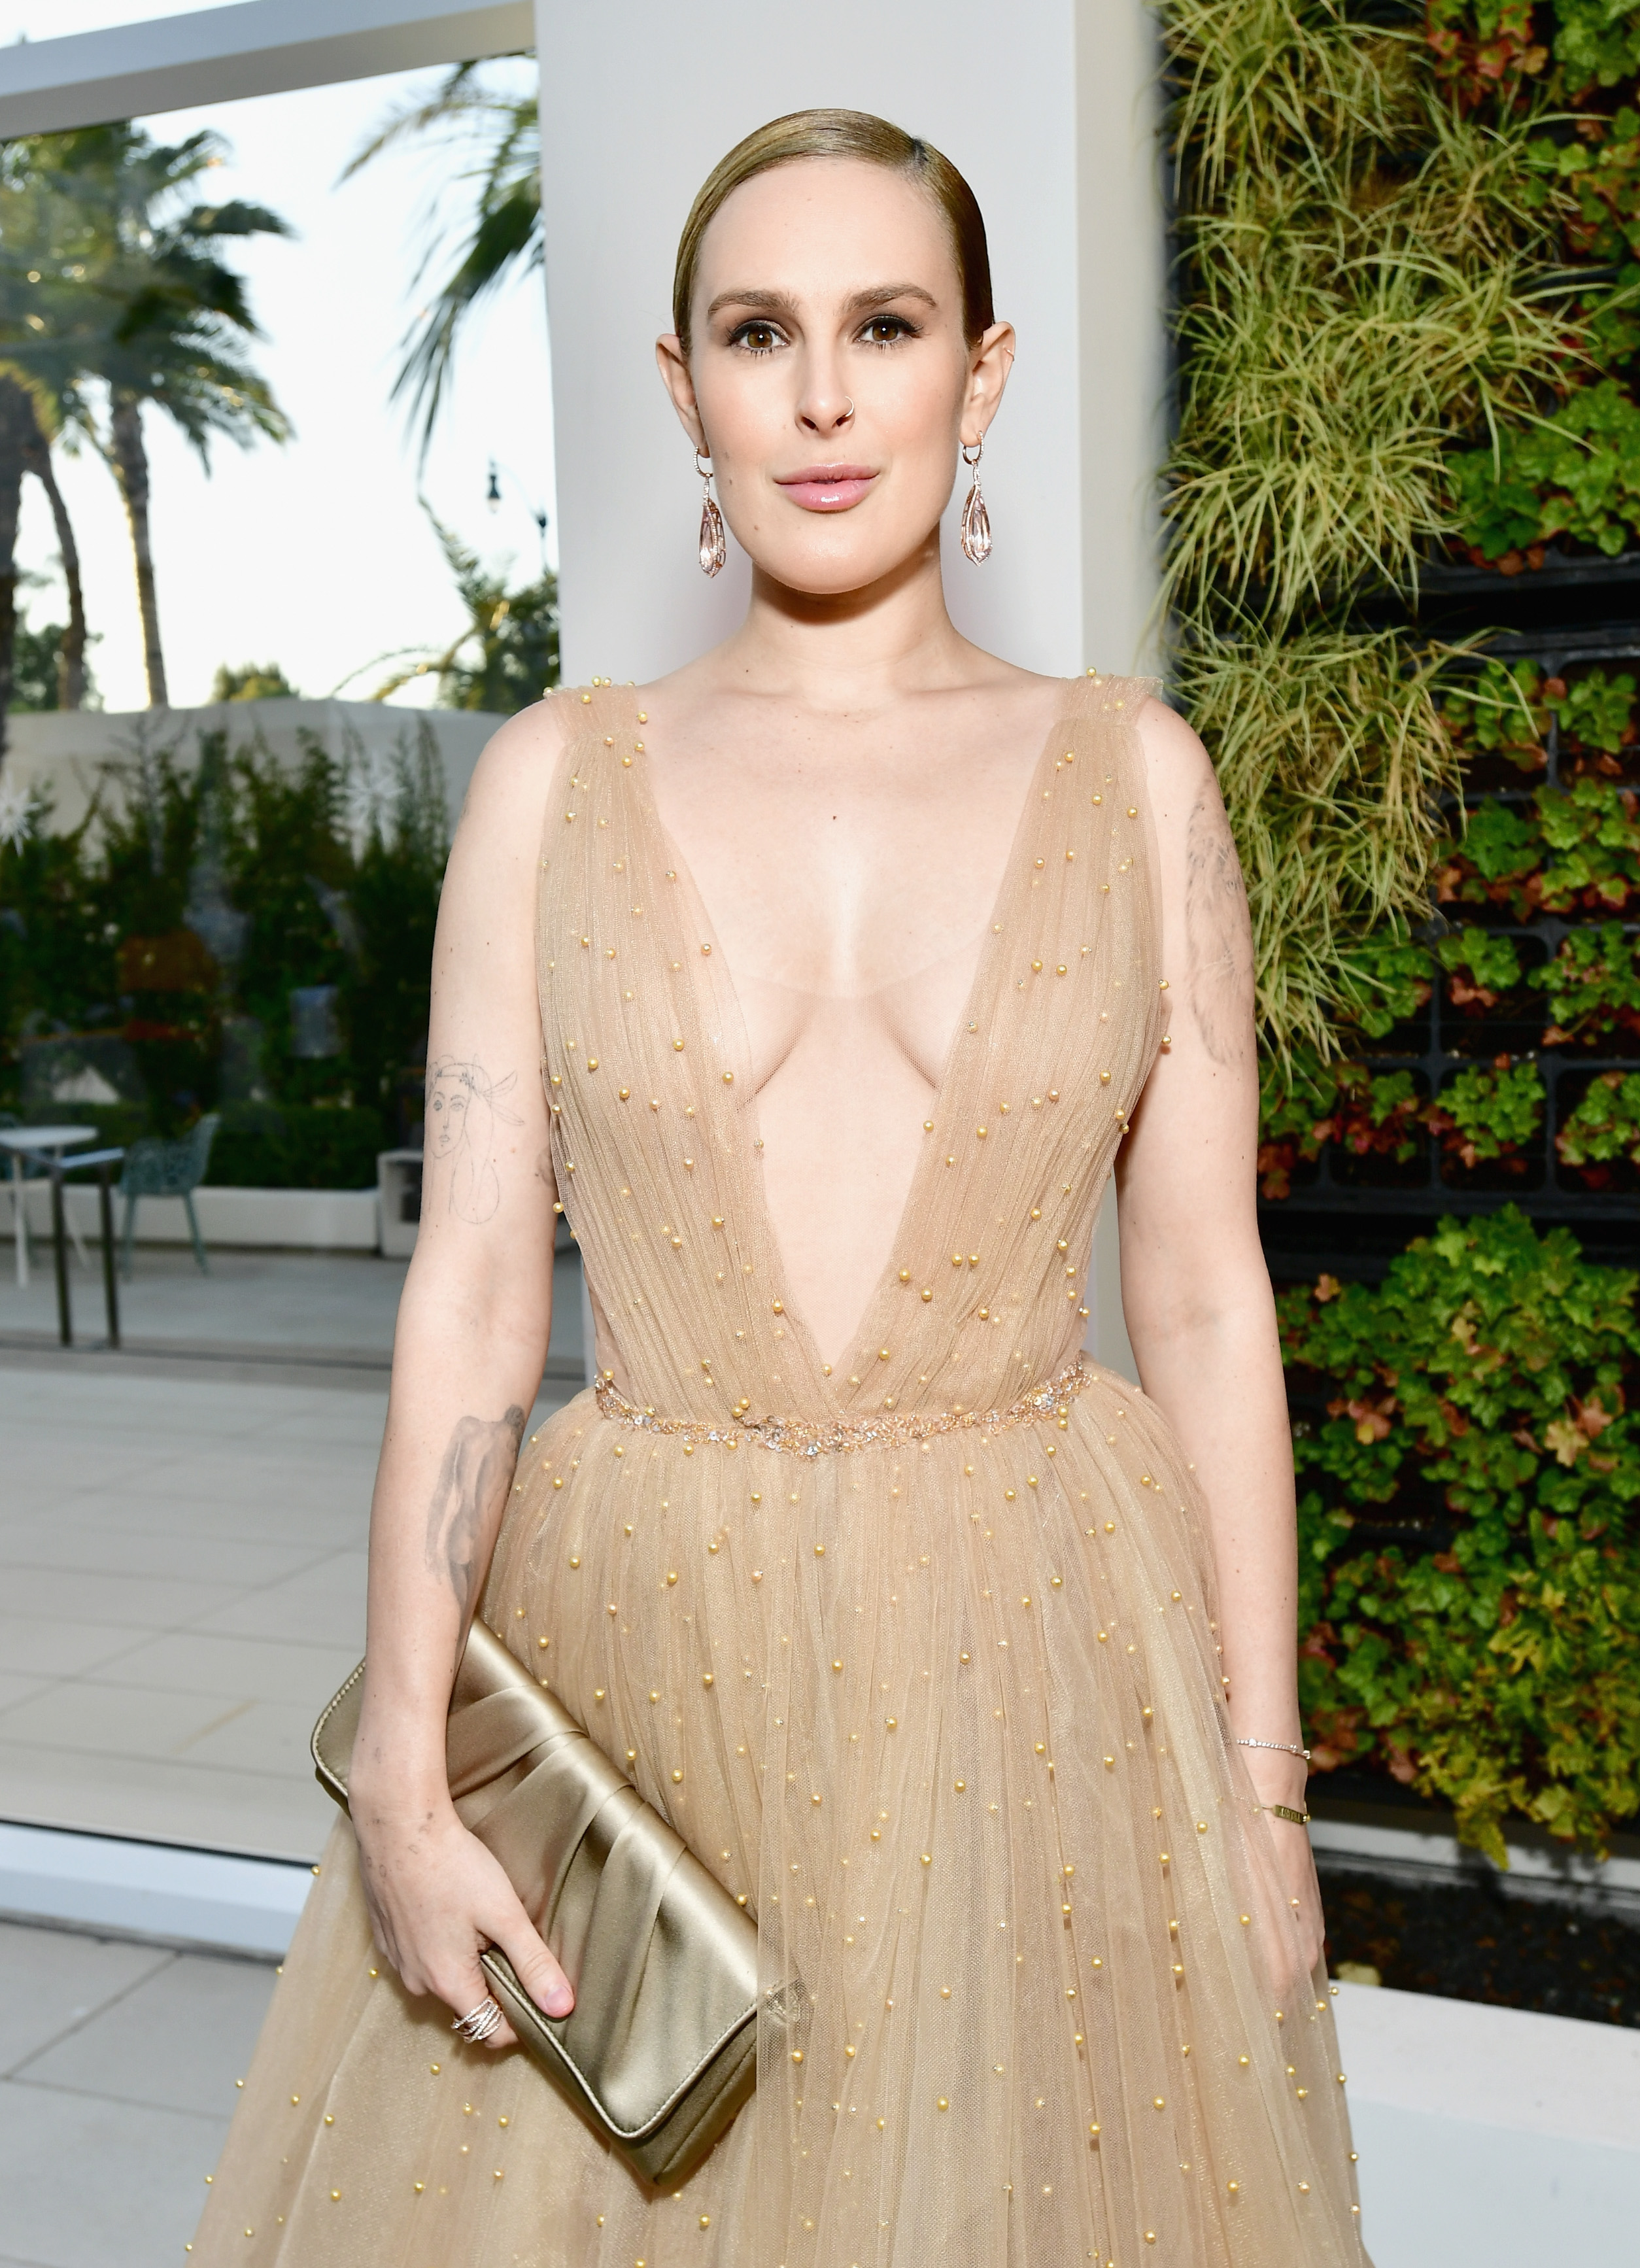 BEVERLY HILLS, CA - APRIL 20:  Rumer Willis attends the 25th Annual Race To Erase MS Gala at The Beverly Hilton Hotel on April 20, 2018 in Beverly Hills, California.  (Photo by Emma McIntyre/Getty Images for Race To Erase MS)